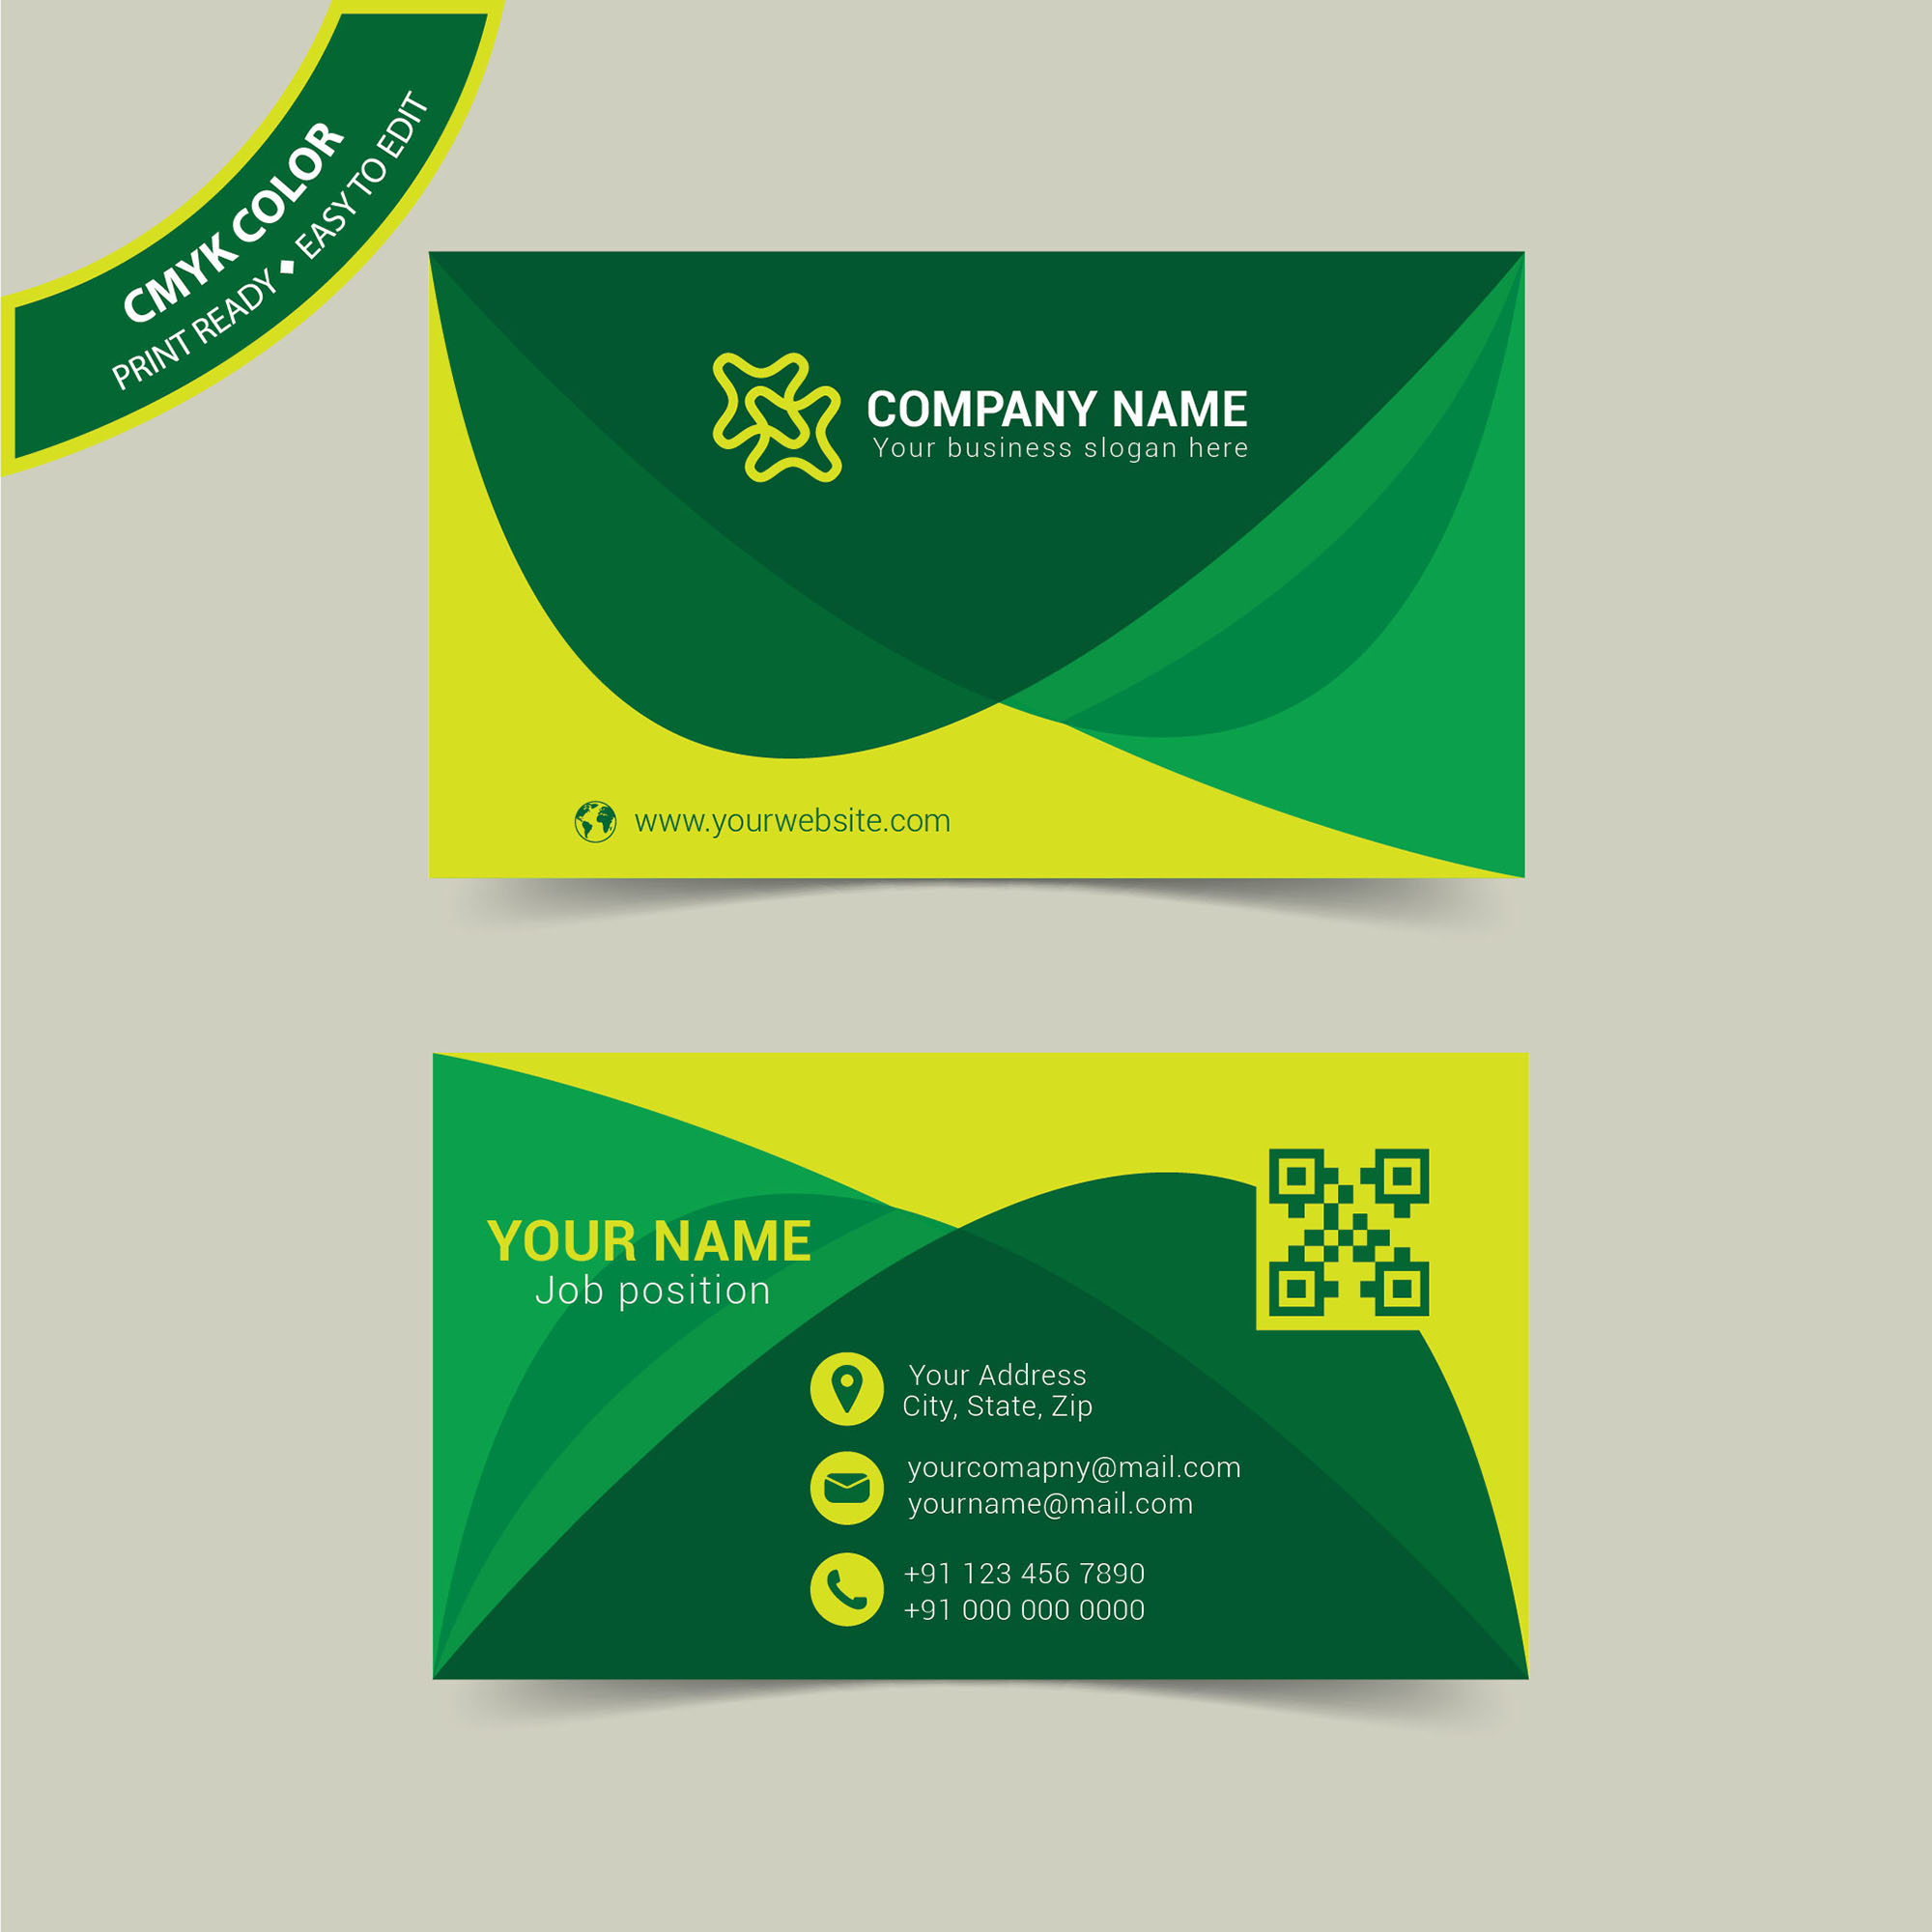 Elegant business card design free download wisxi business card business cards business card design business card template design templates colourmoves